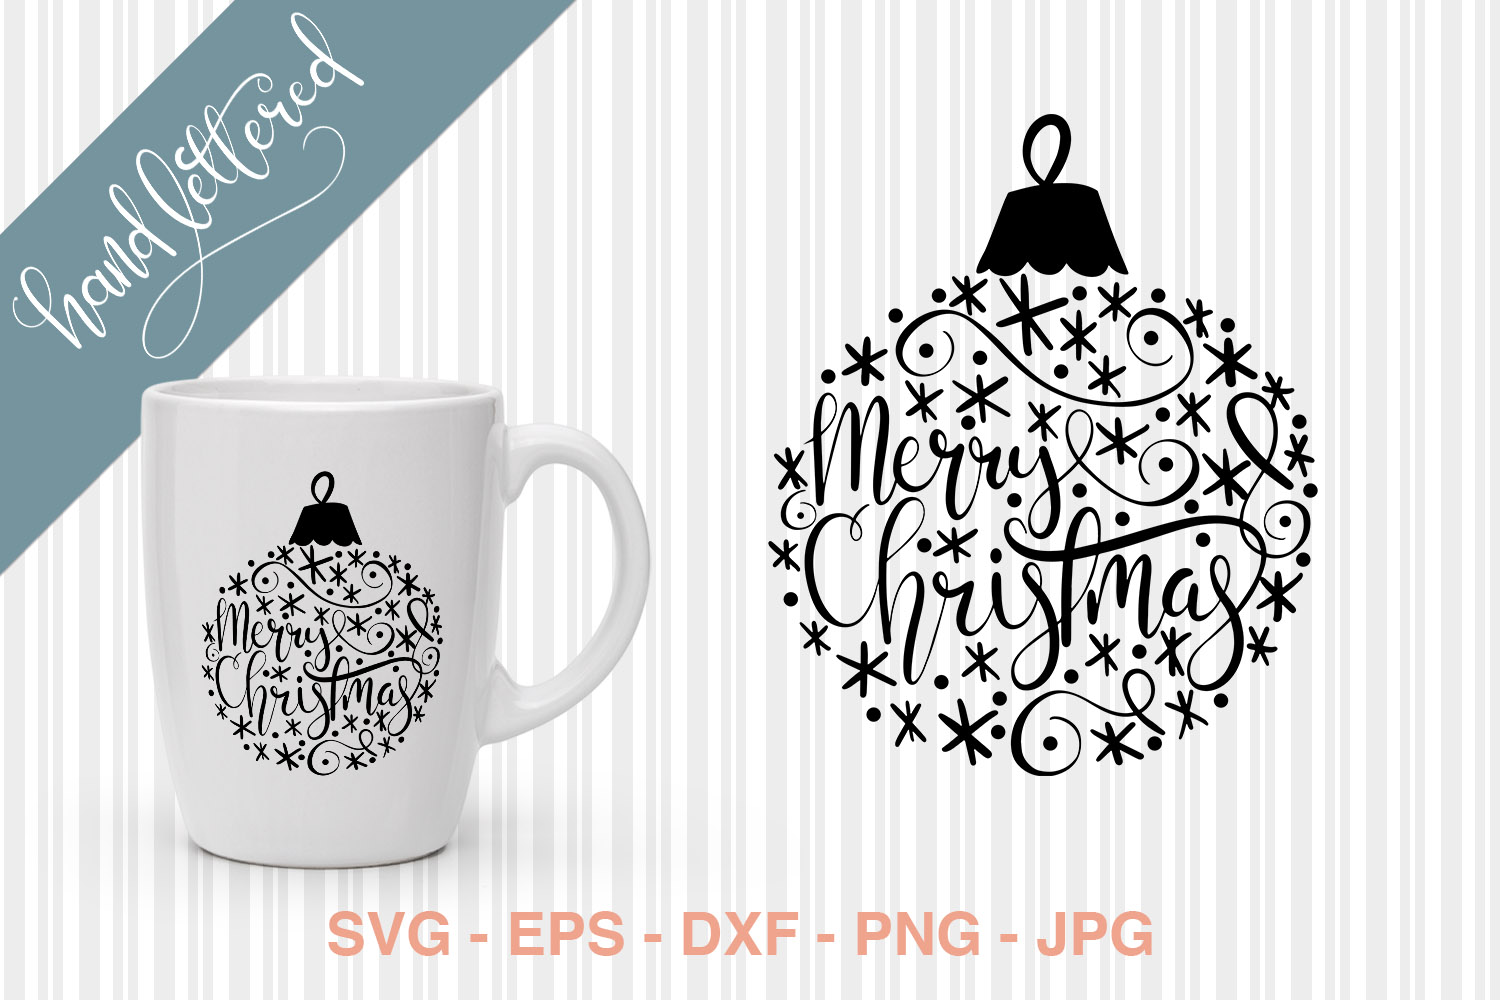 Download Free Christmas Bauble Graphic By Kristy Hatswell Creative Fabrica for Cricut Explore, Silhouette and other cutting machines.